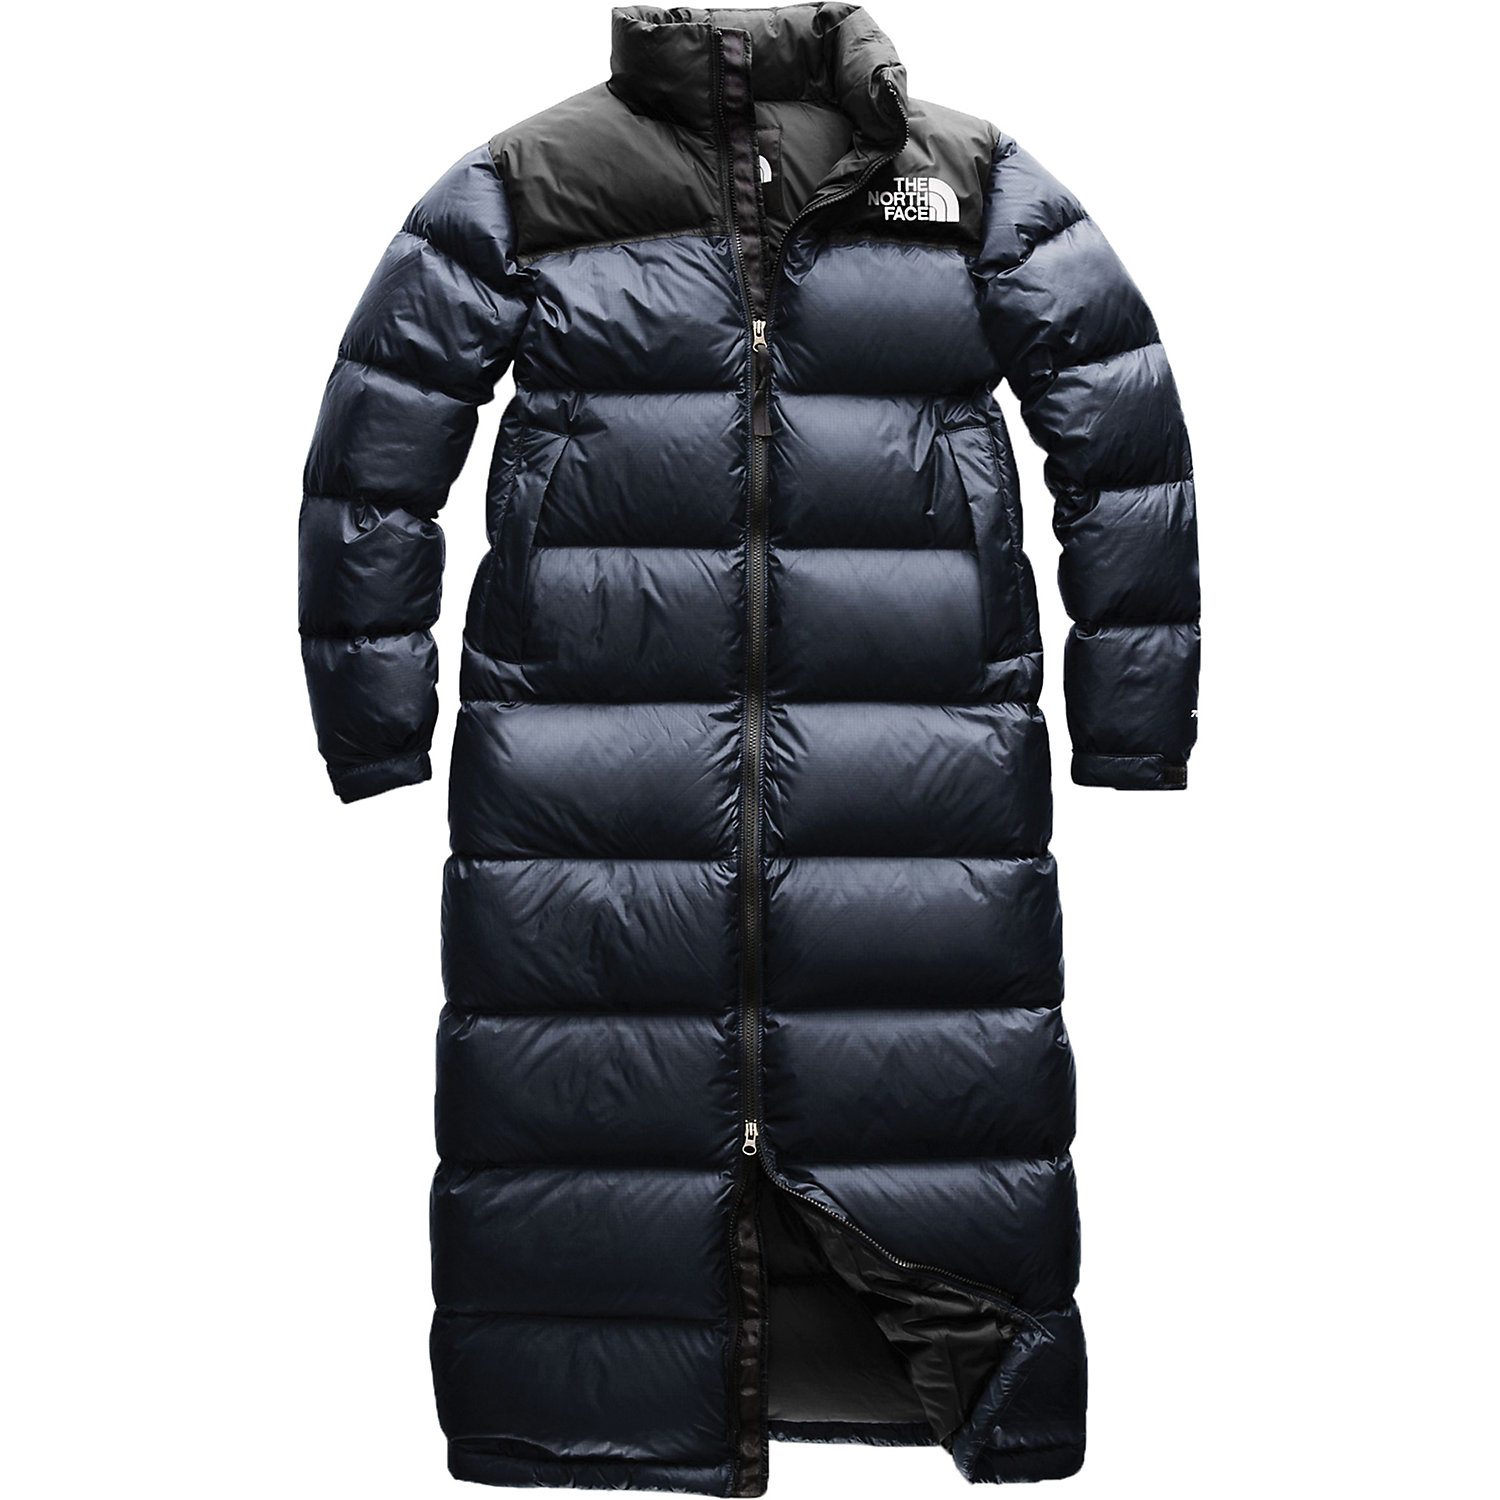 39e46c9111 Womens Down Jackets. The North Face Women s Nuptse Duster